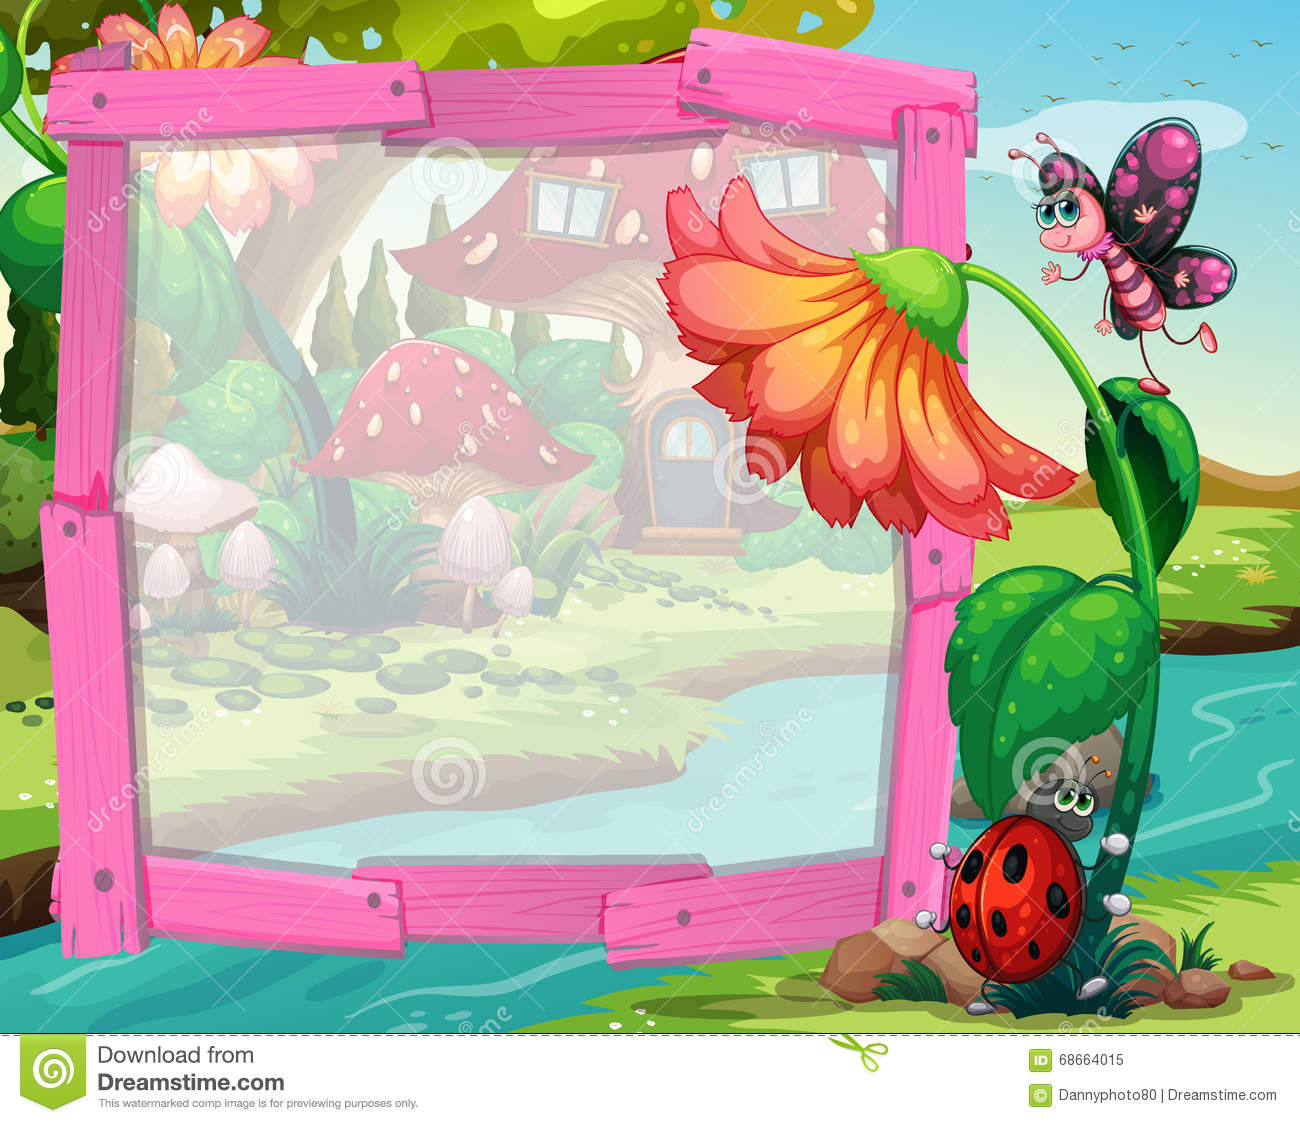 Cartoon Character Border Design : Border design with flower and insects stock vector